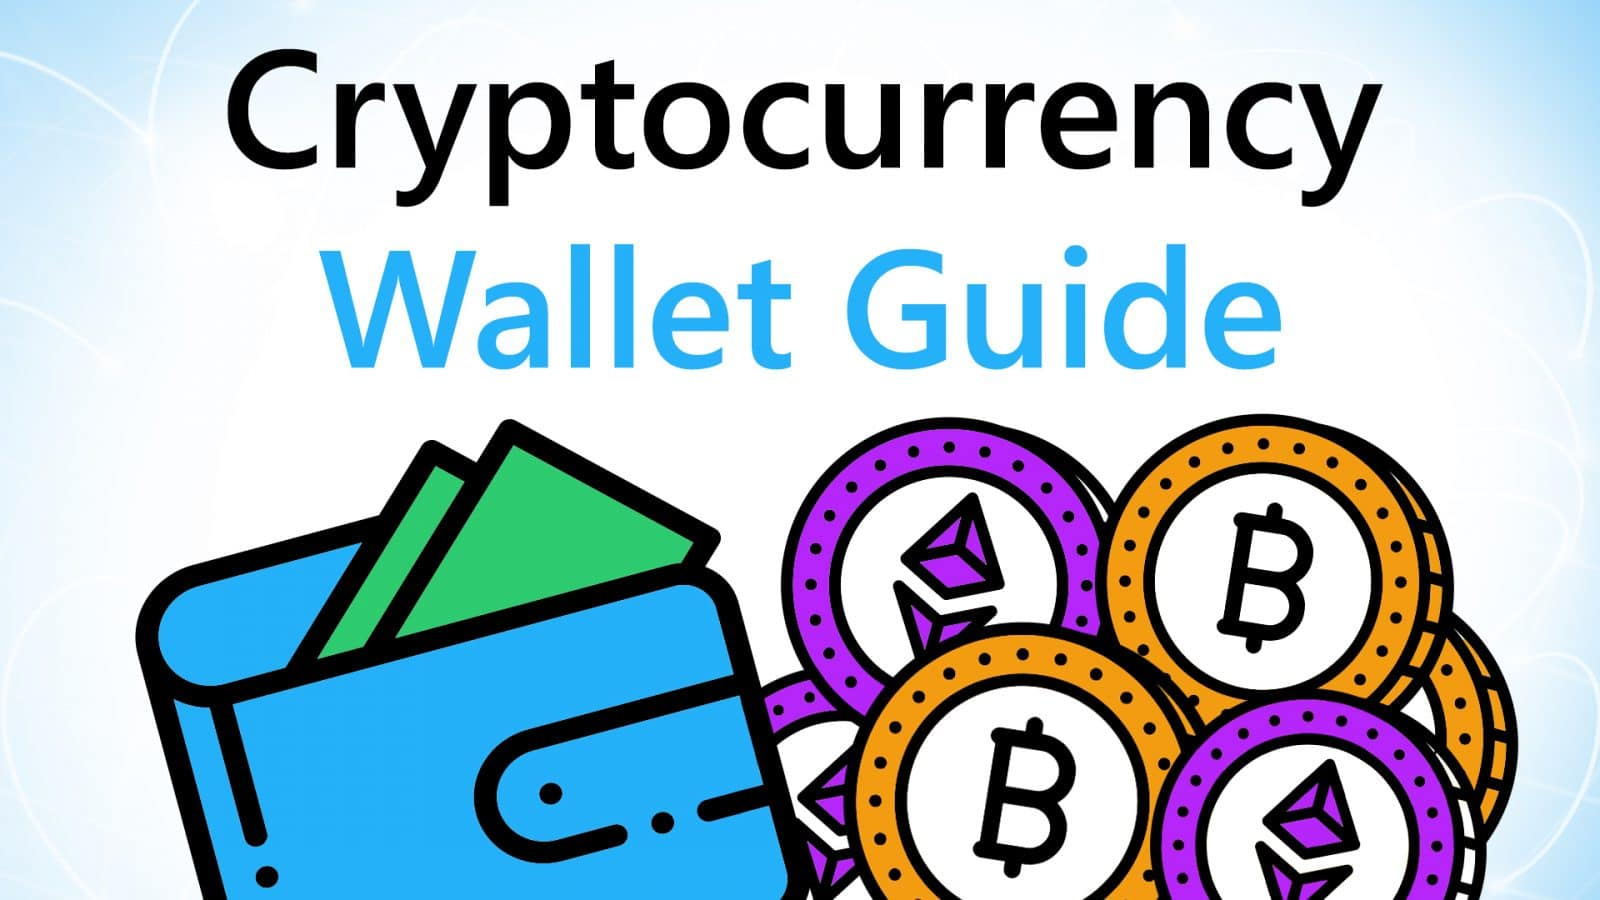 Video Guide: Cryptocurrency Wallet Guide